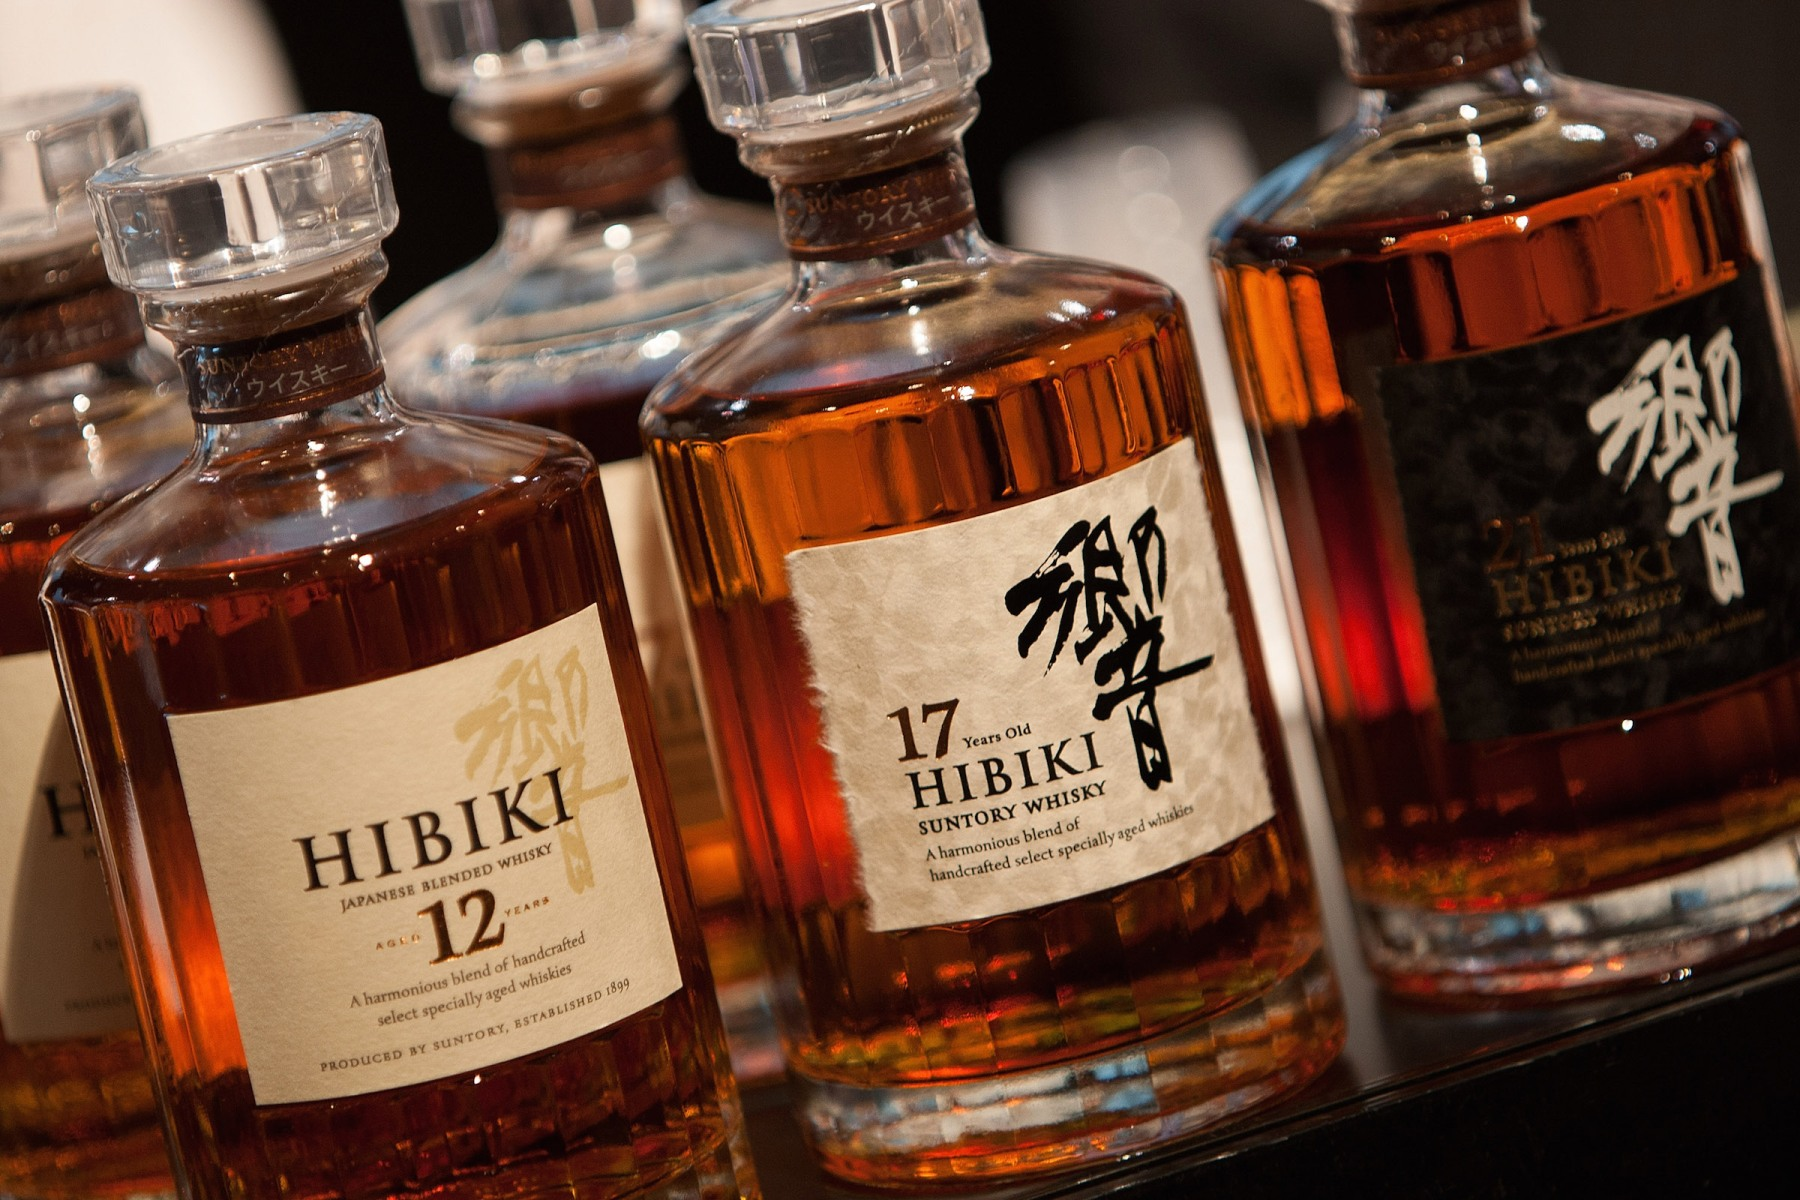 Bottles of award-winning Japanese Suntory Hibiki blended whisky, on display at the 'Whisky Live Tokyo 2012, Tokyo International Bar Show', on May 5, 2012 in Tokyo, Japan. (Jeremy Sutton-Hibbert/Getty Images)